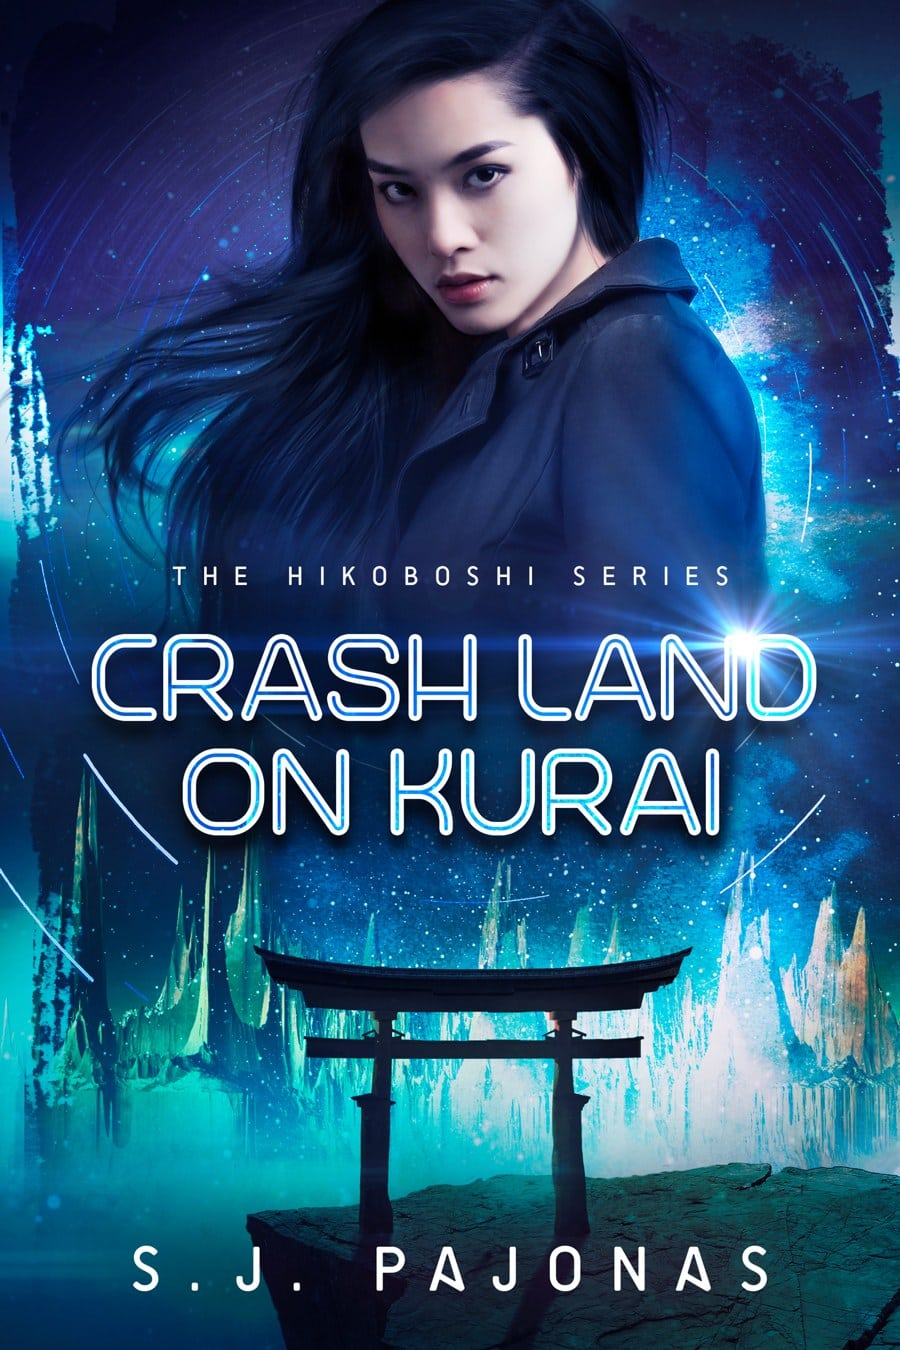 CRASH LAND ON KURAI is now available on Apple Books, Nook, Kobo, and Google Play.